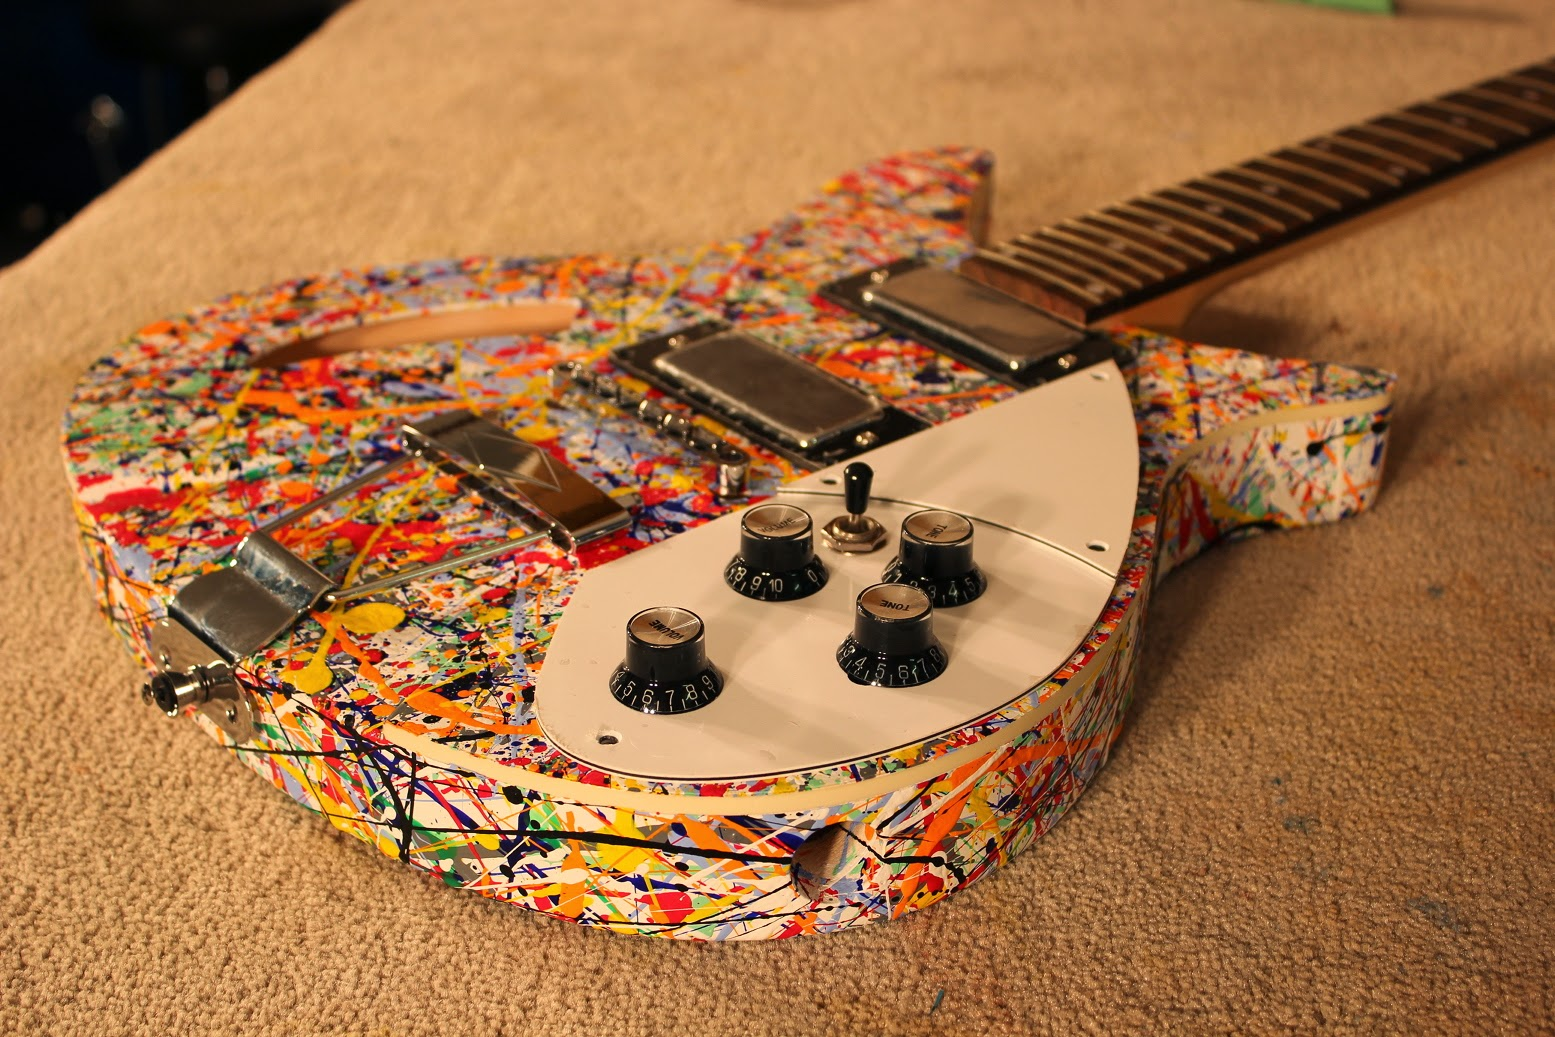 How to do a cool guitar paint job with spray cans